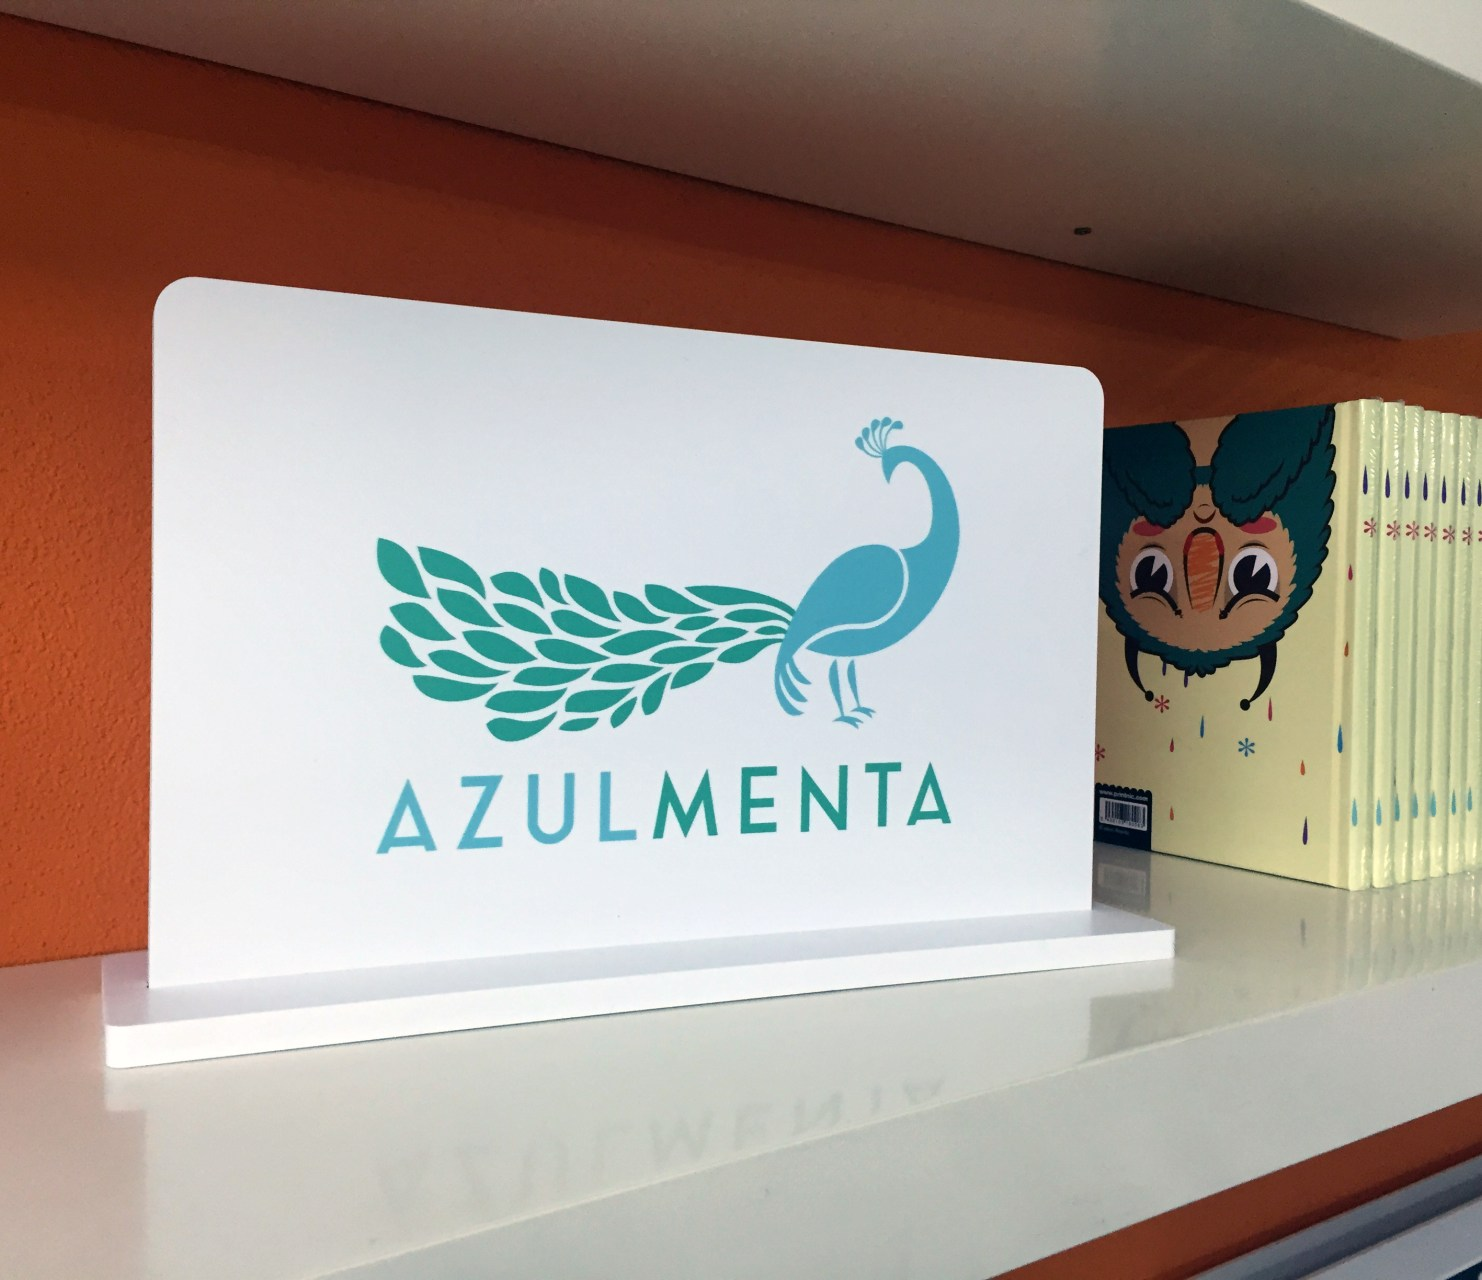 DISPLAY-azul-menta